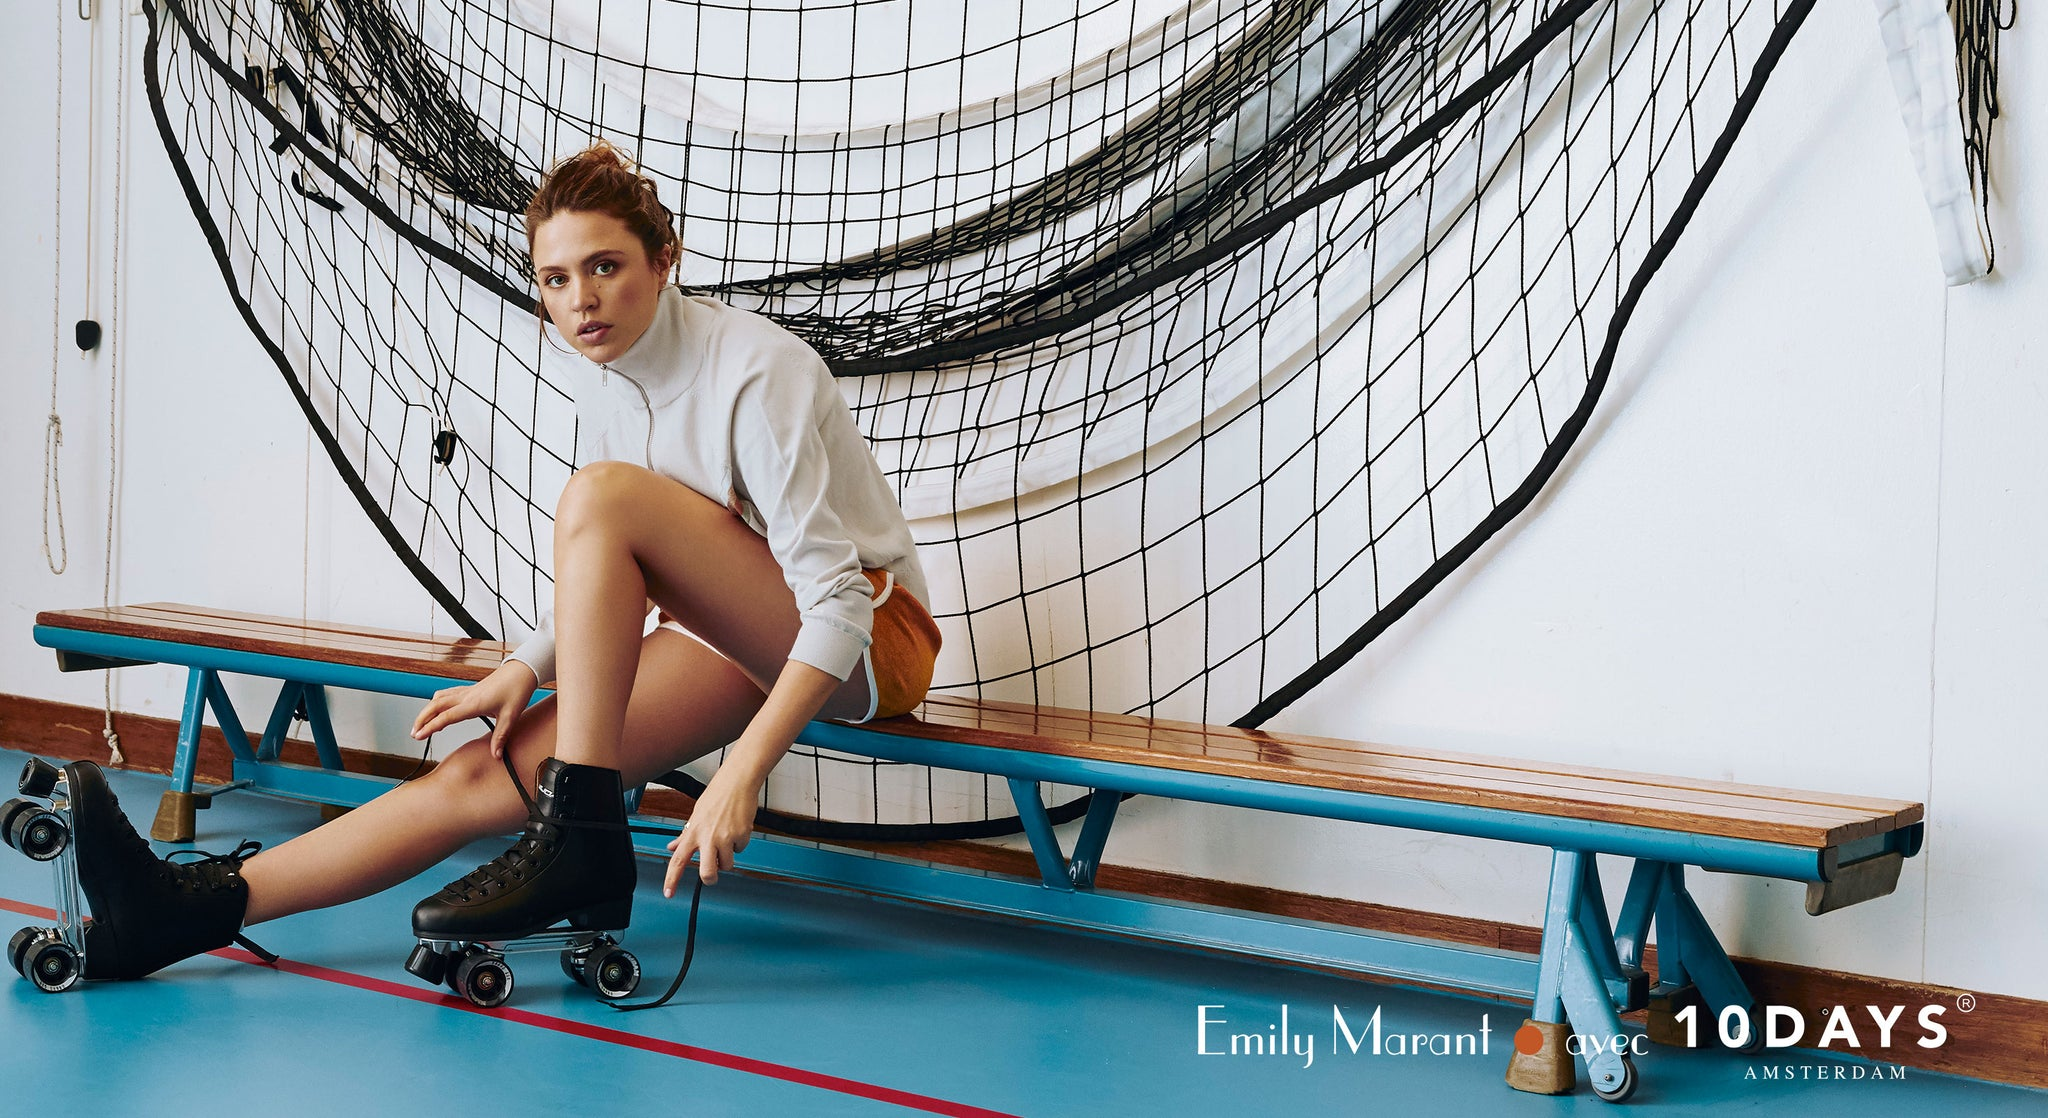 Emily Marant avec 10DAYS capsule collection